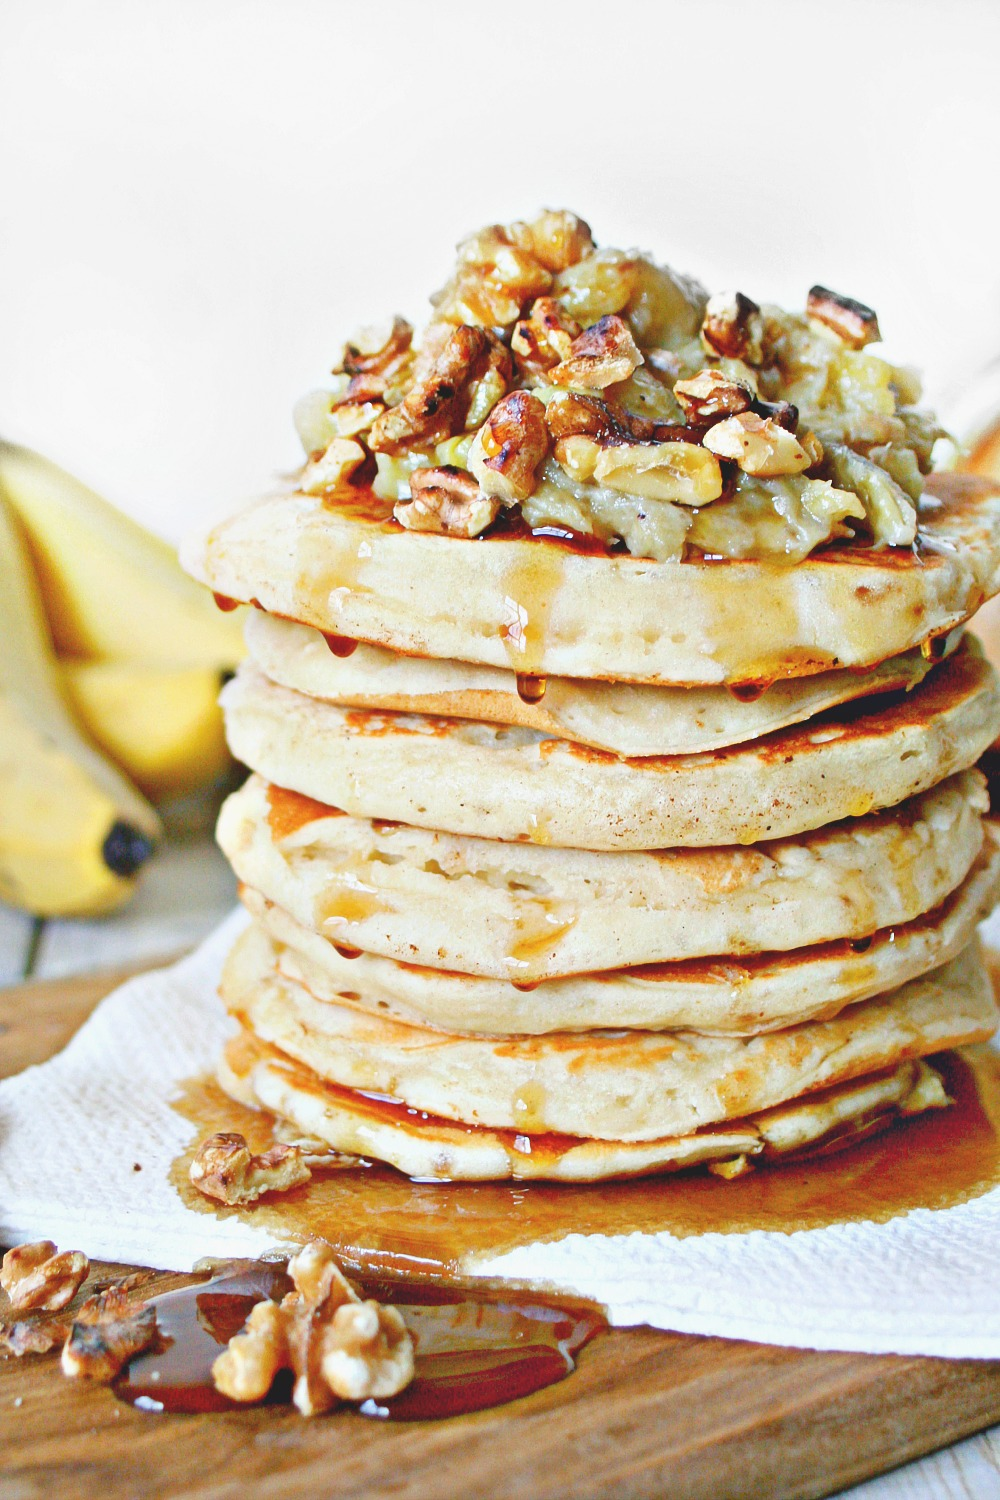 Pancakes with Banana Honey Compote and Toasted Walnuts 04